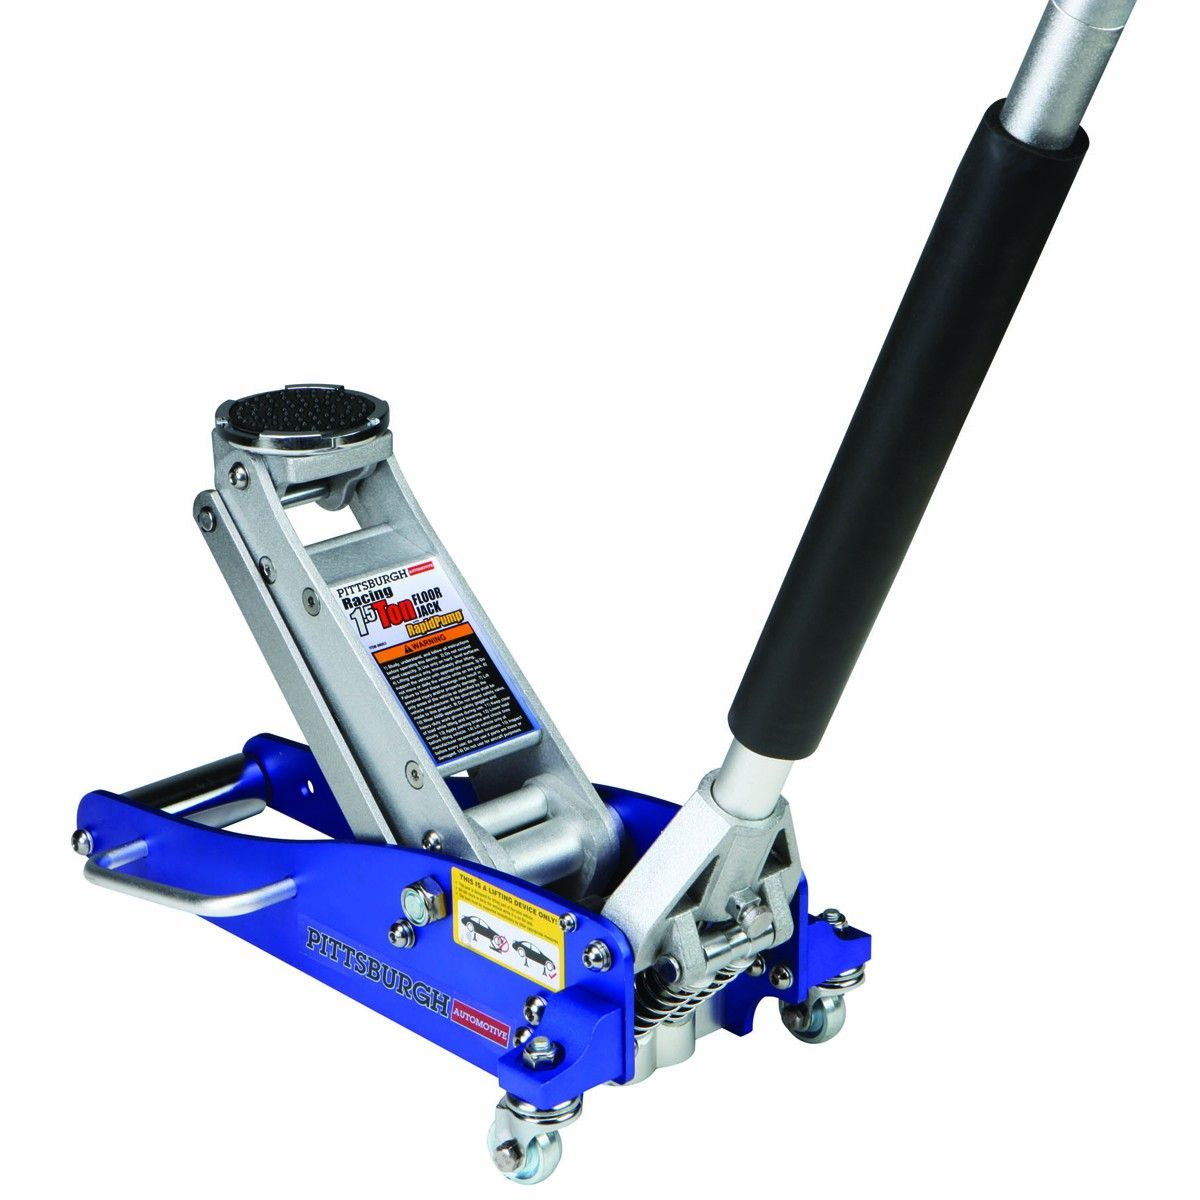 1 5 Ton Compact Aluminum Racing Jack With Rapid Pump 174 In